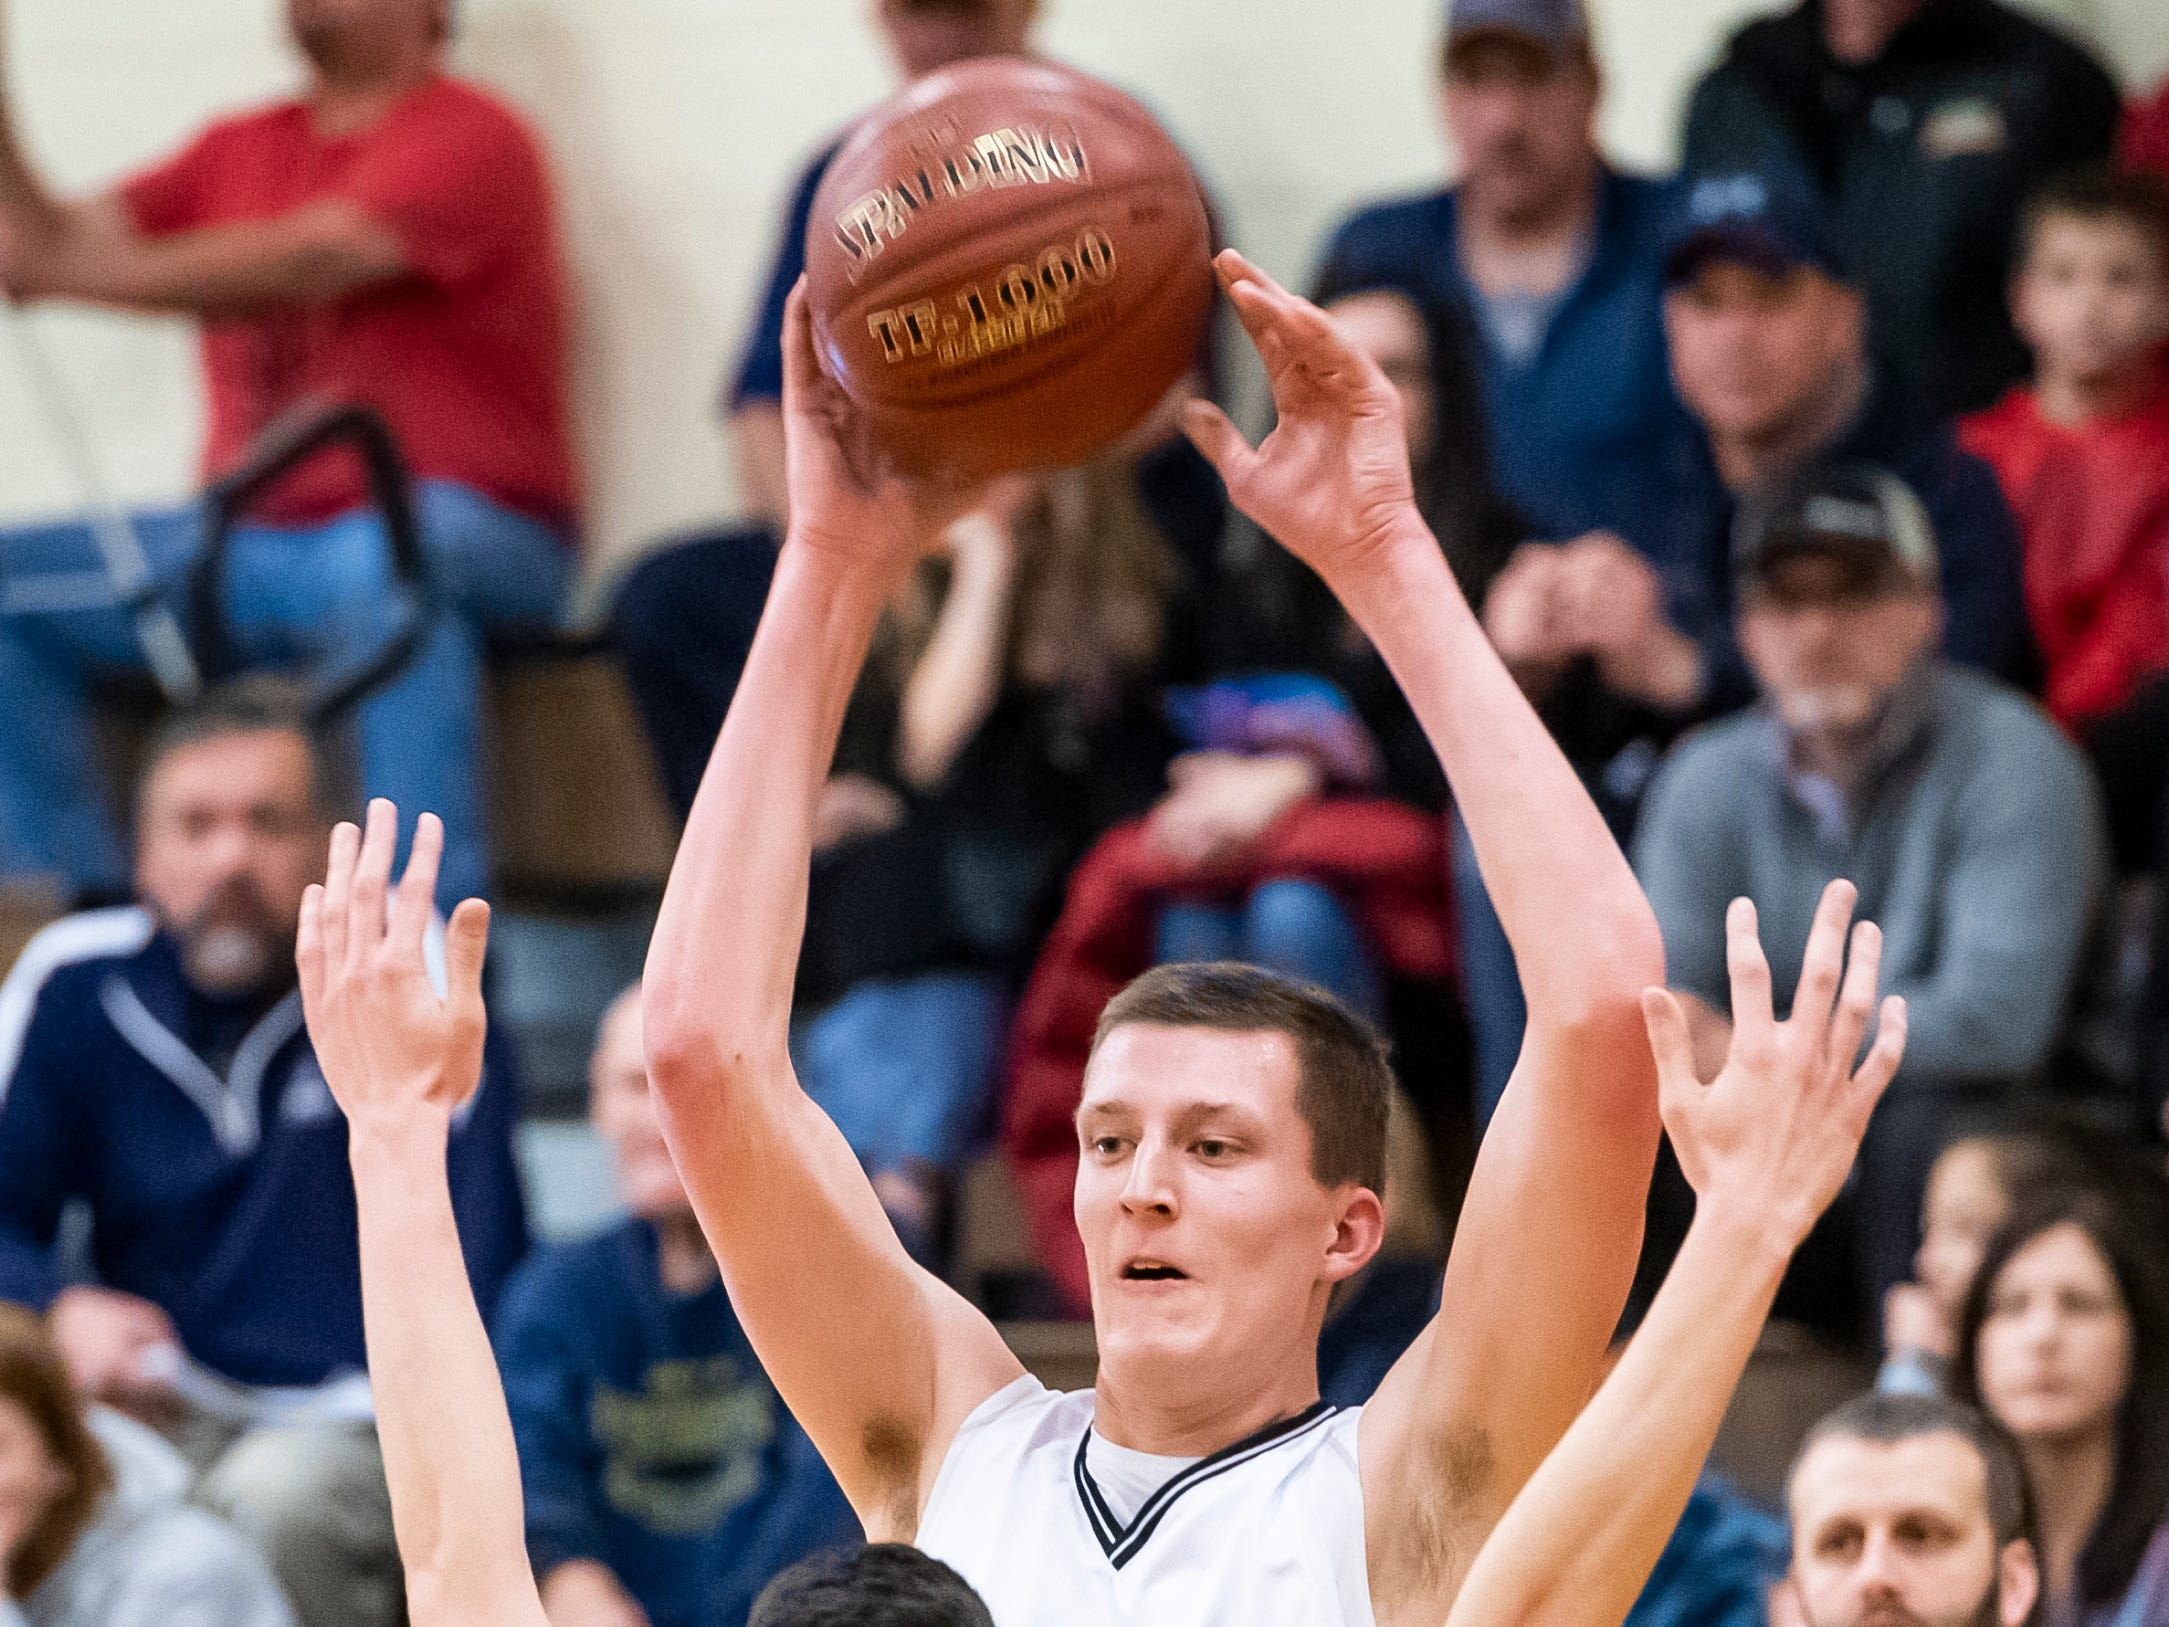 6-foot-8-inch Biglerville center Drew Riley holds the ball up during play against Littlestown on Friday, January 11, 2019. The Canners fell 65-38.